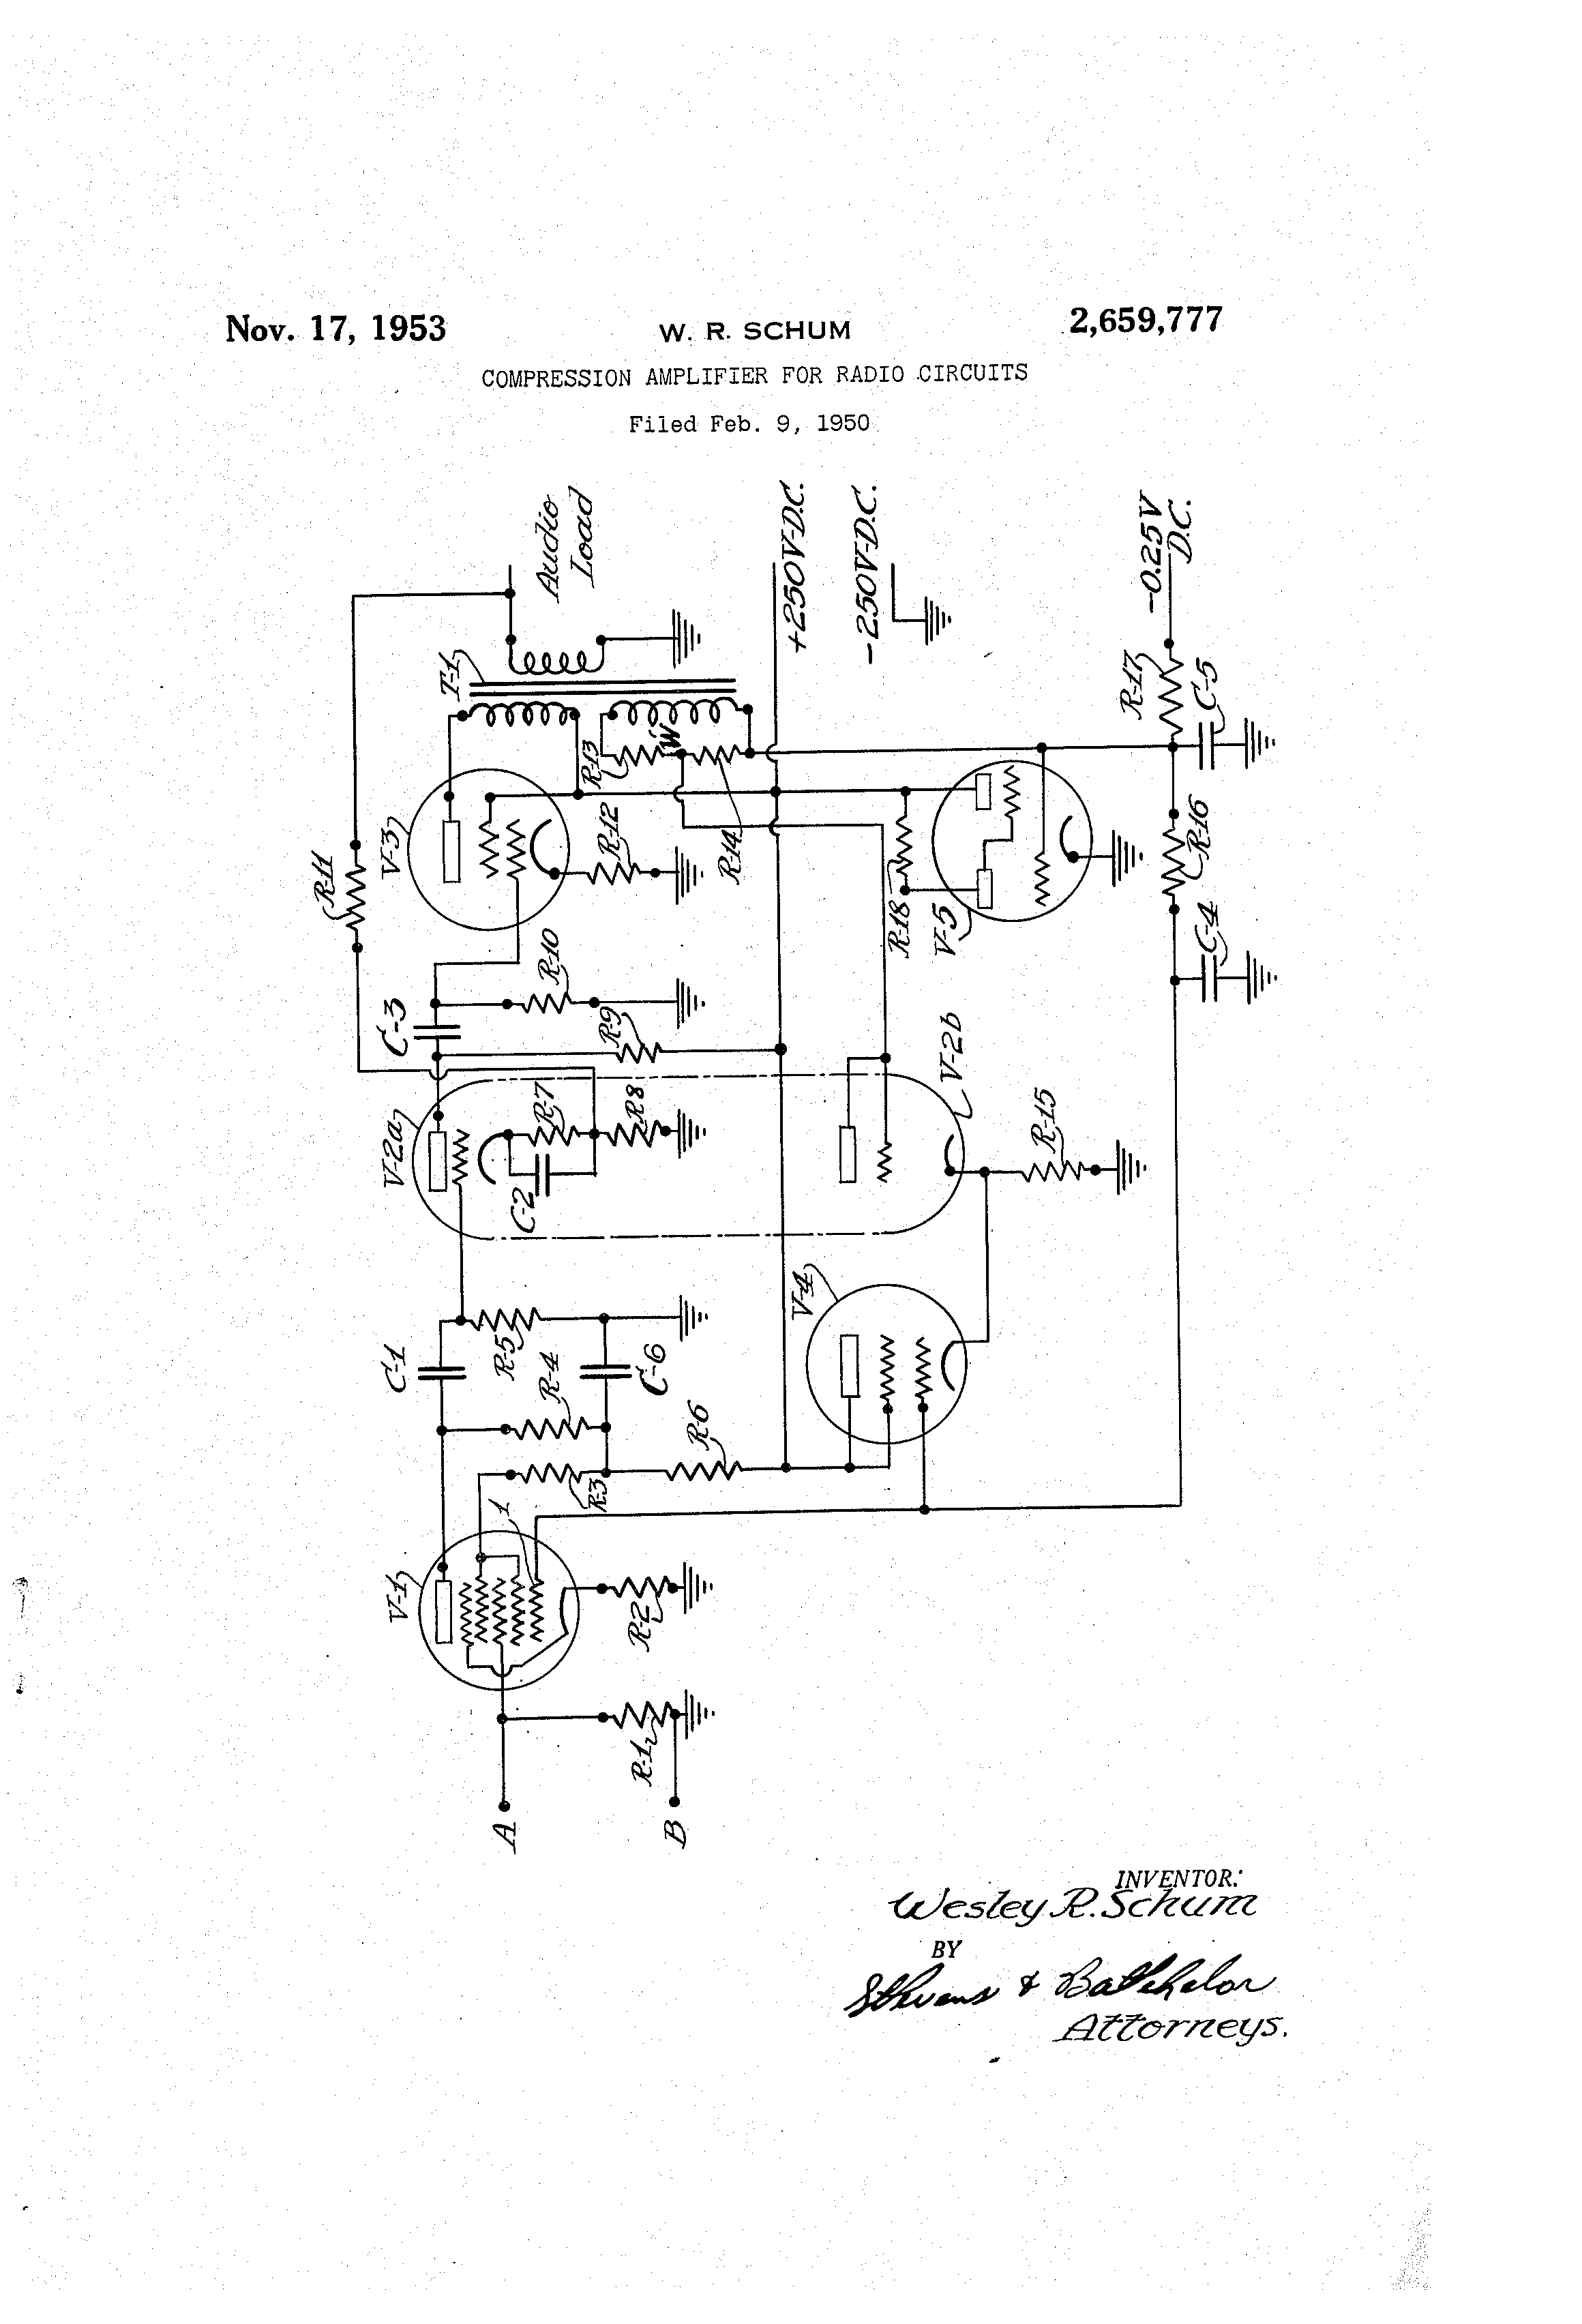 Brevet Us2659777 Compression Amplifier For Radio Circuits Google Input Signal Circuit Amplifiercircuit Patent Drawing